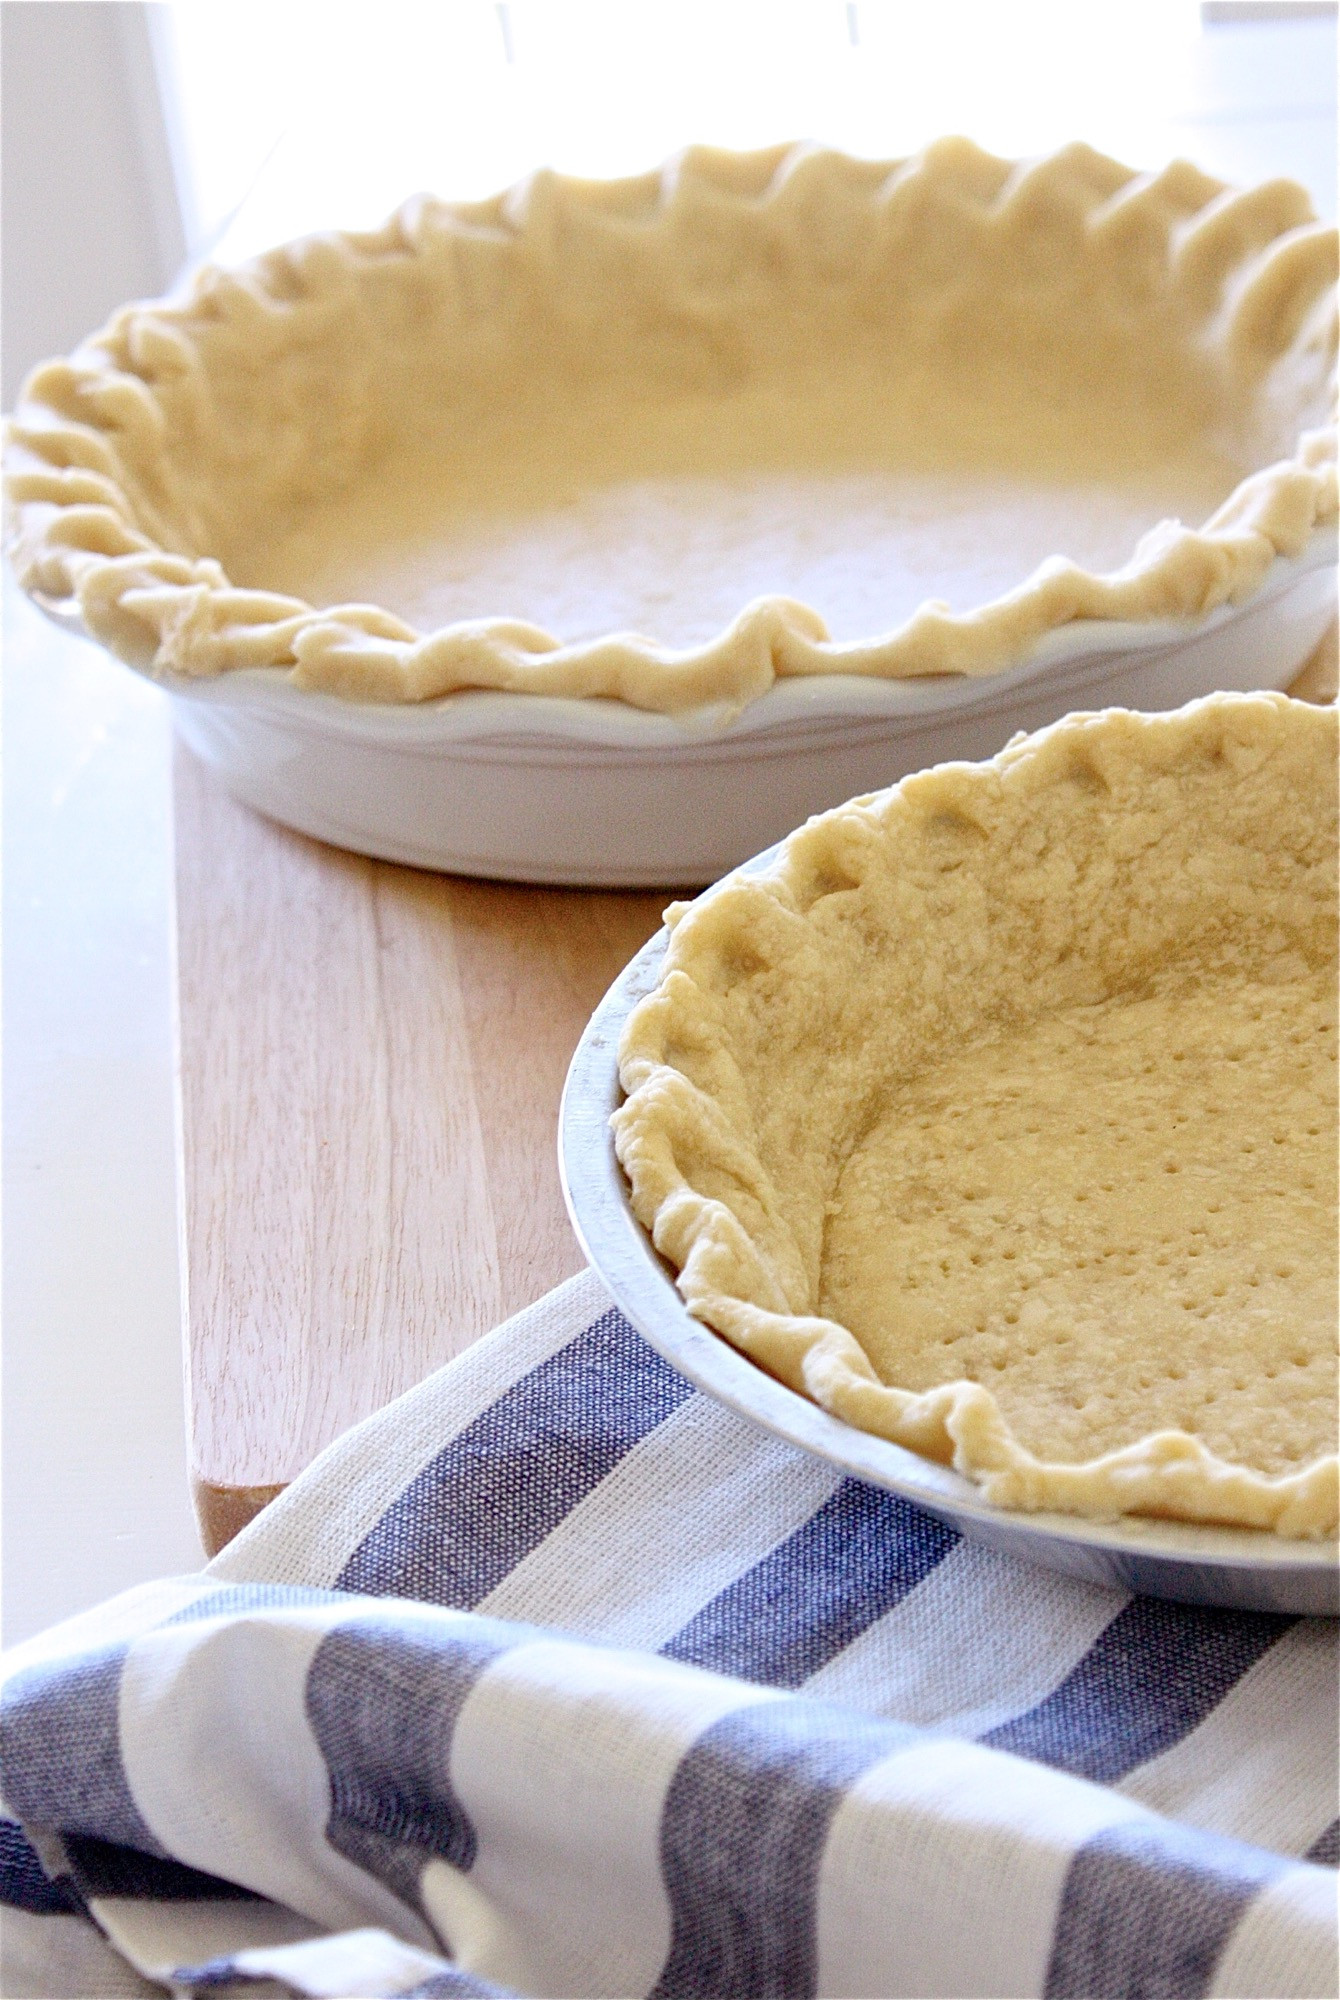 Recipes With Pie Crust  Don't for the Sweet Potatoes Don't for the Pie